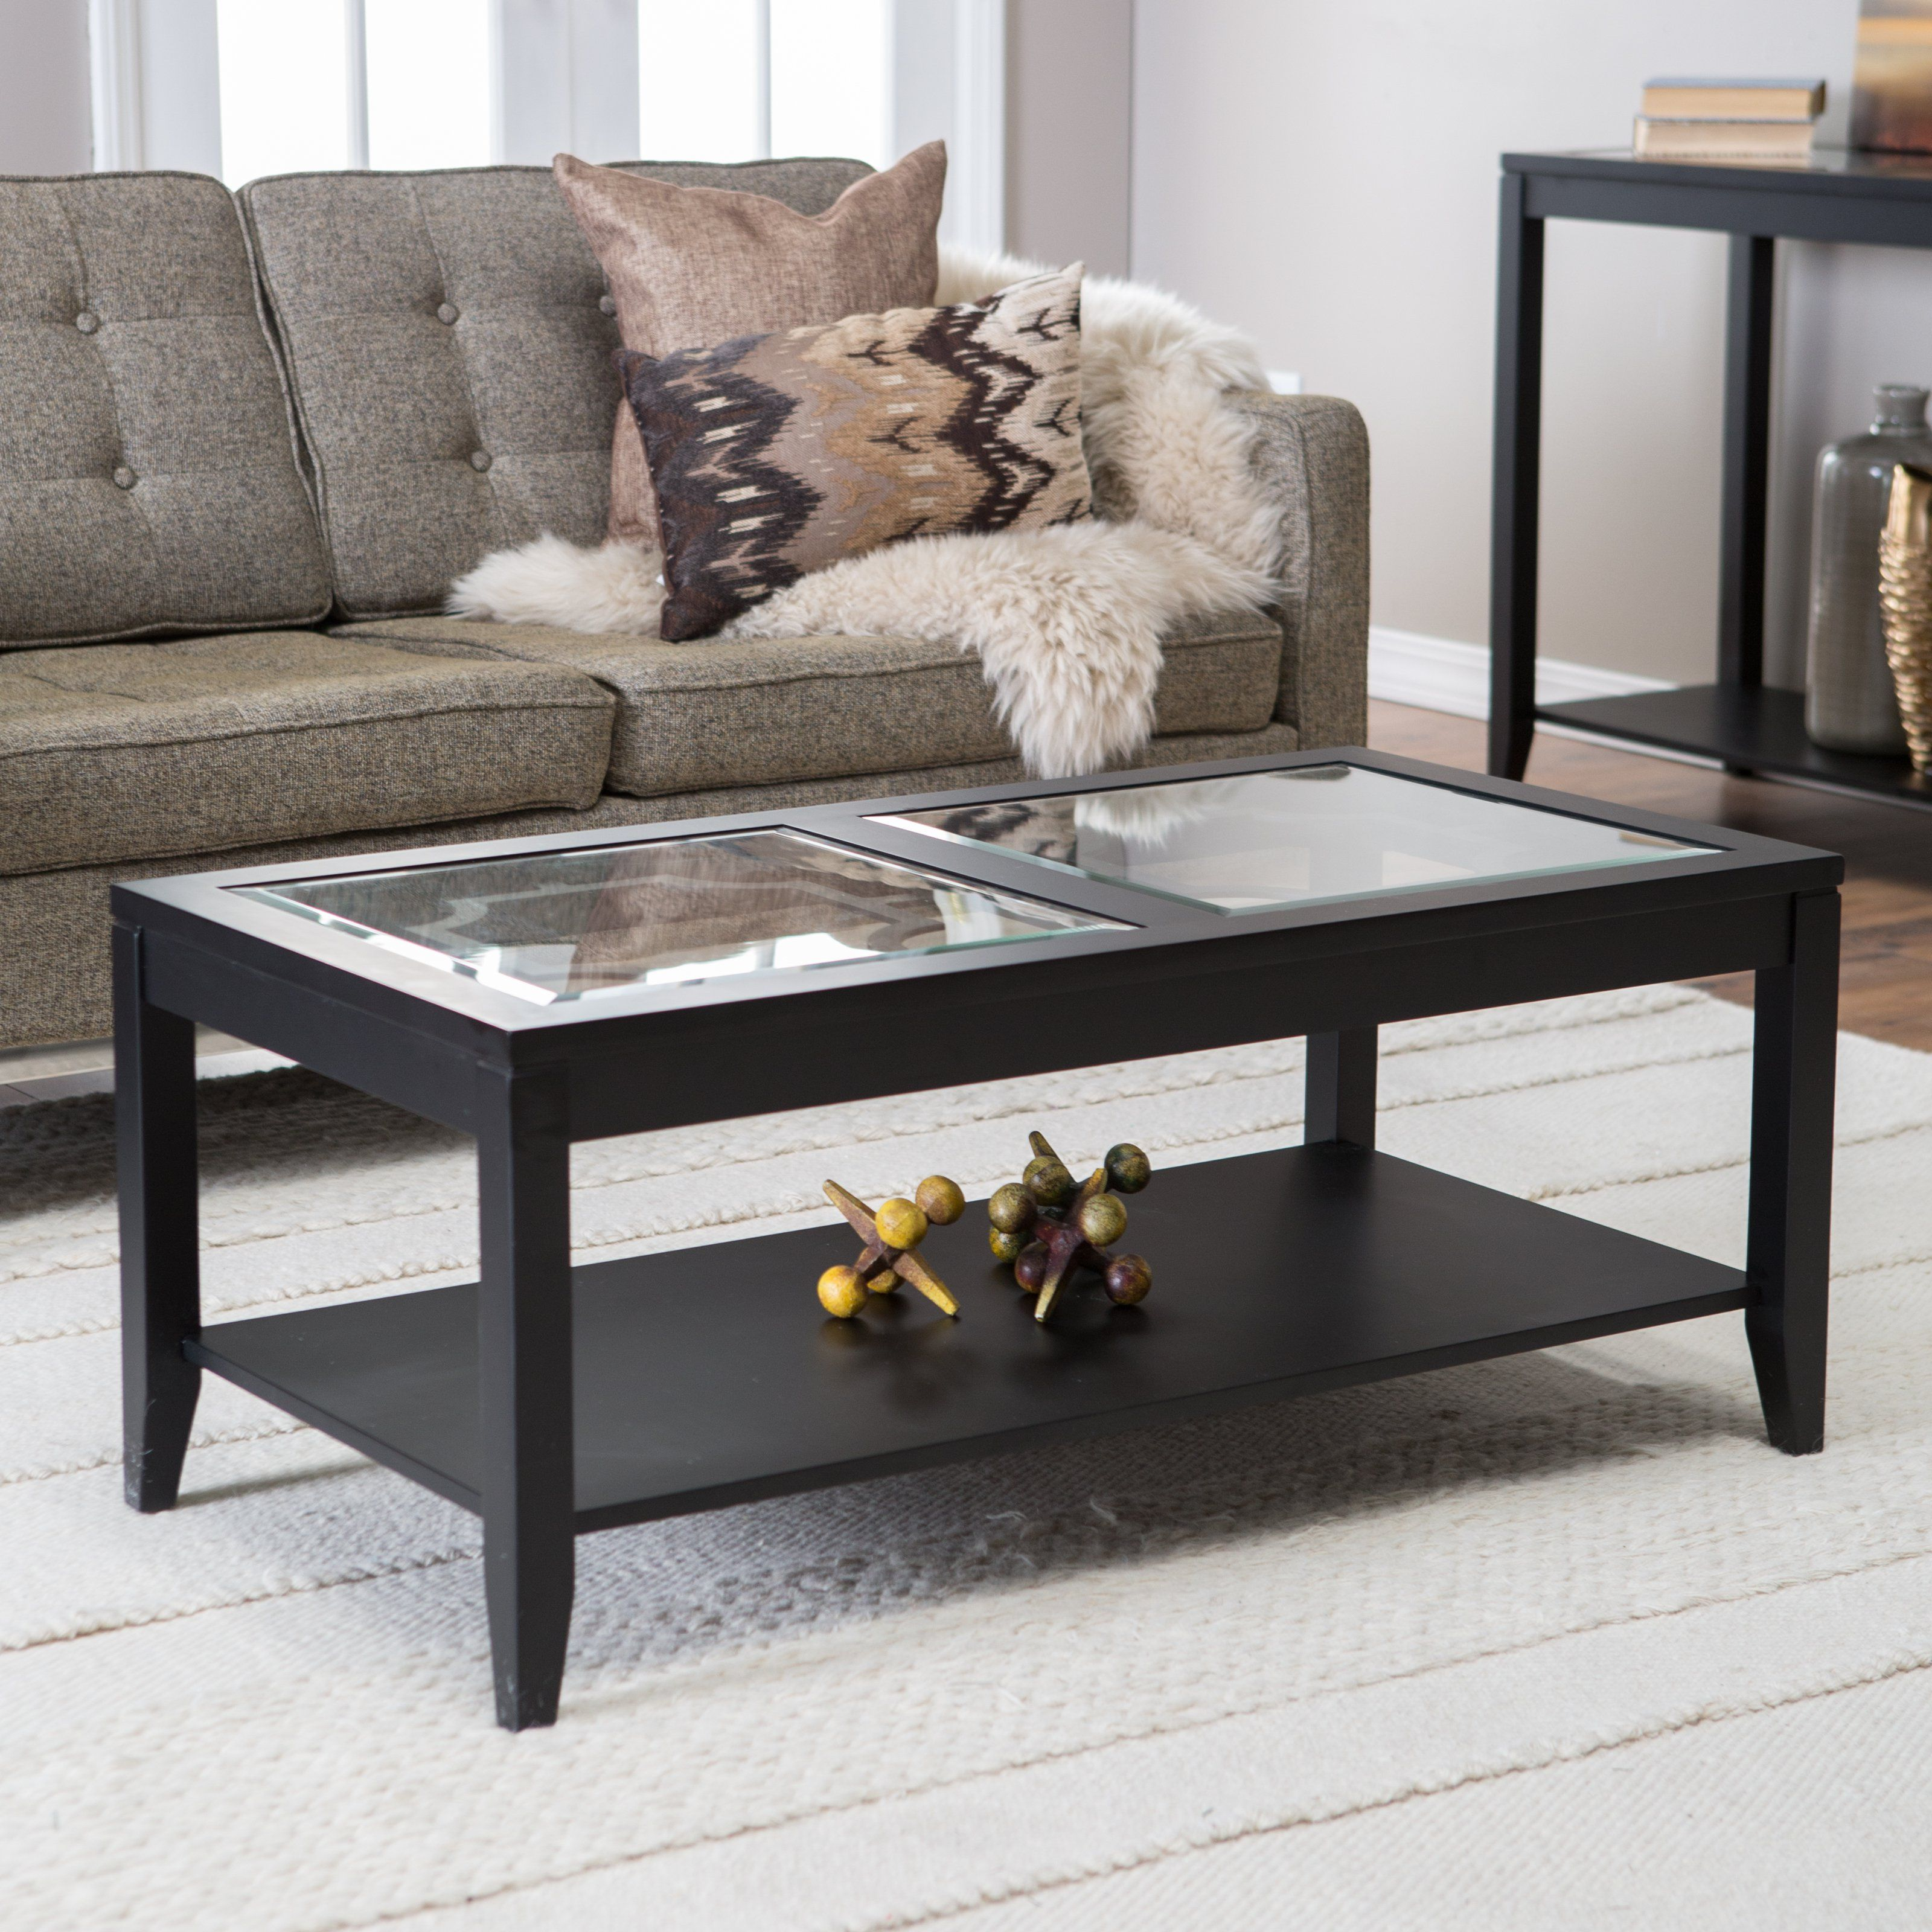 Shelby Glass Top Coffee Table With Quatrefoil Underlay For A Simple Yet Bold Statement In Y Coffee Table Square Glass Top Coffee Table Coffee Tables For Sale [ 3200 x 3200 Pixel ]